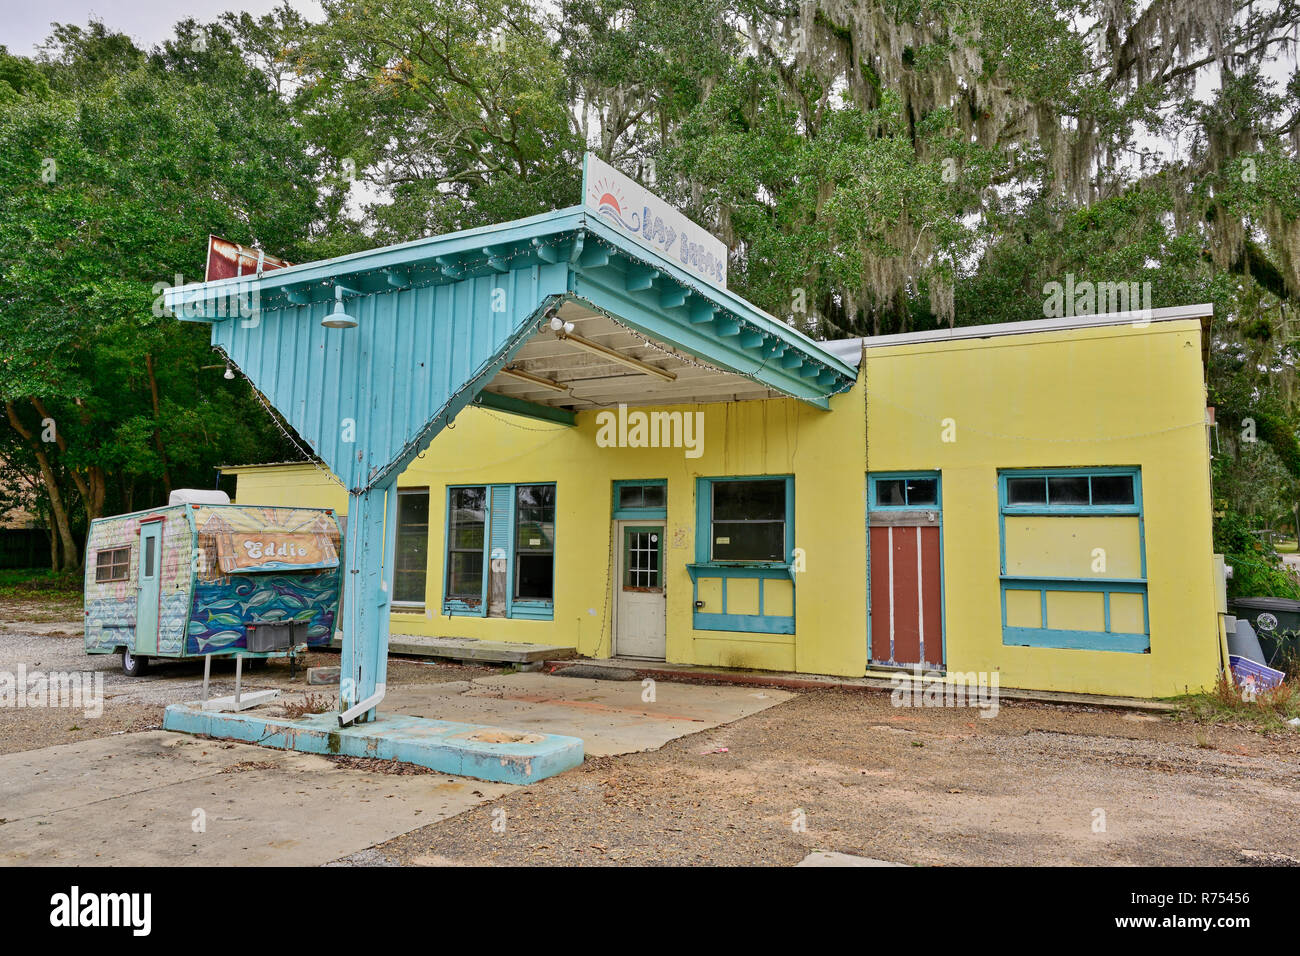 Closed repurposed gas station made into Bay Break a closed diner, or cafe or restaurant, in Fairhope Alabama, USA. - Stock Image